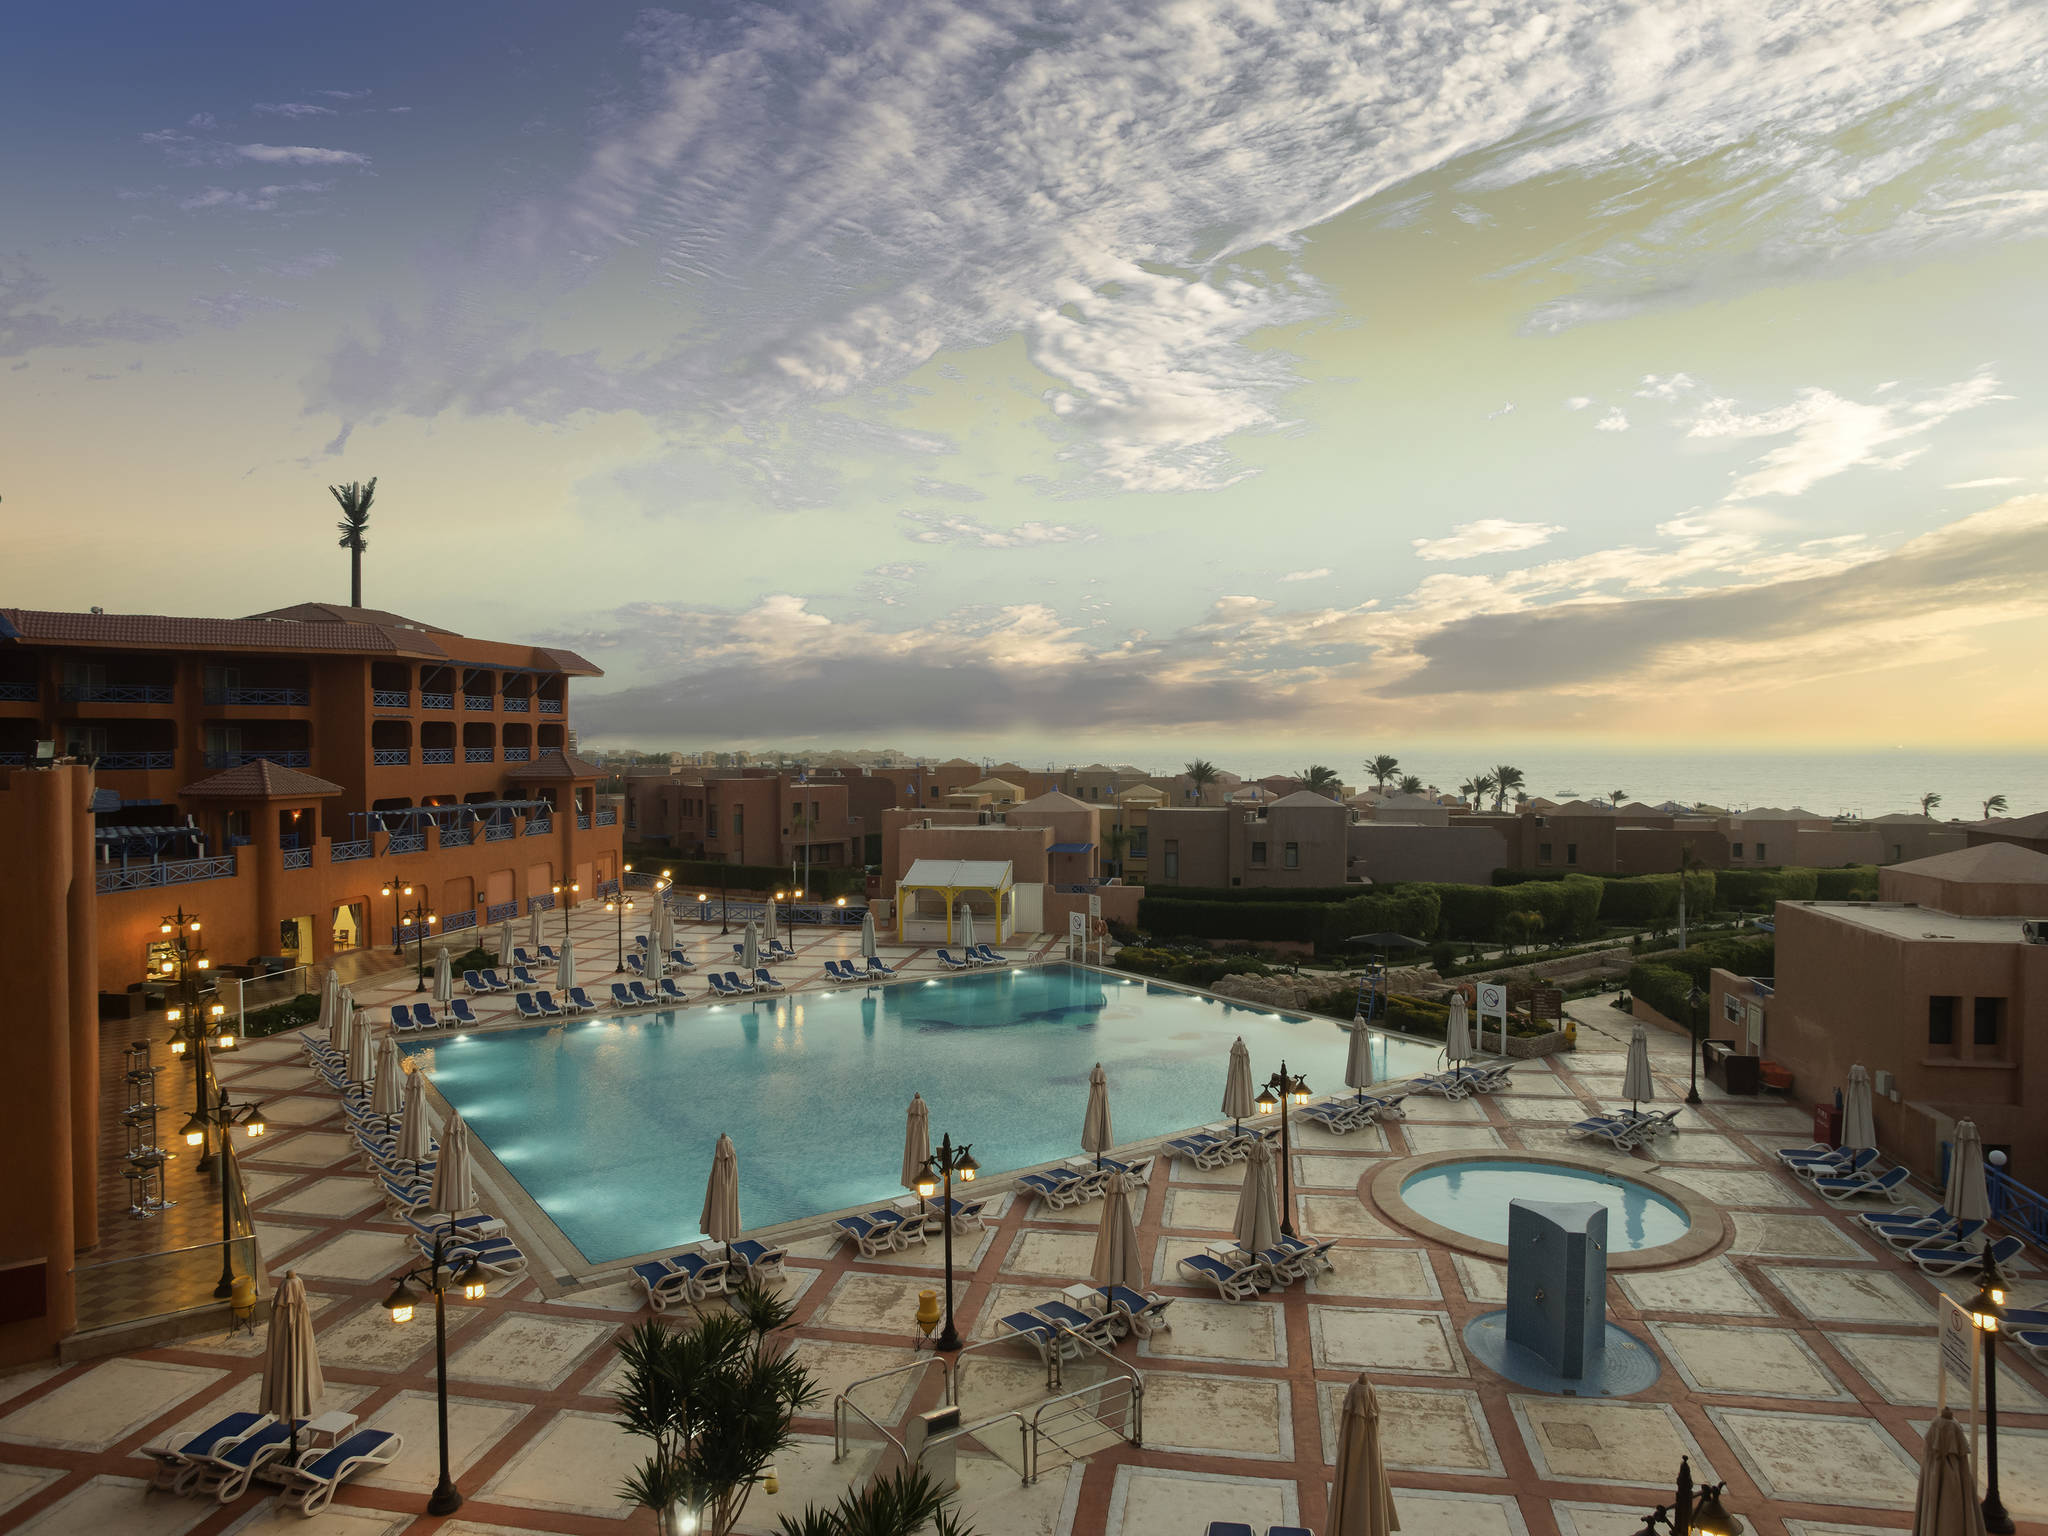 Hotel – Cancun Sokhna - Managed by AccorHotels